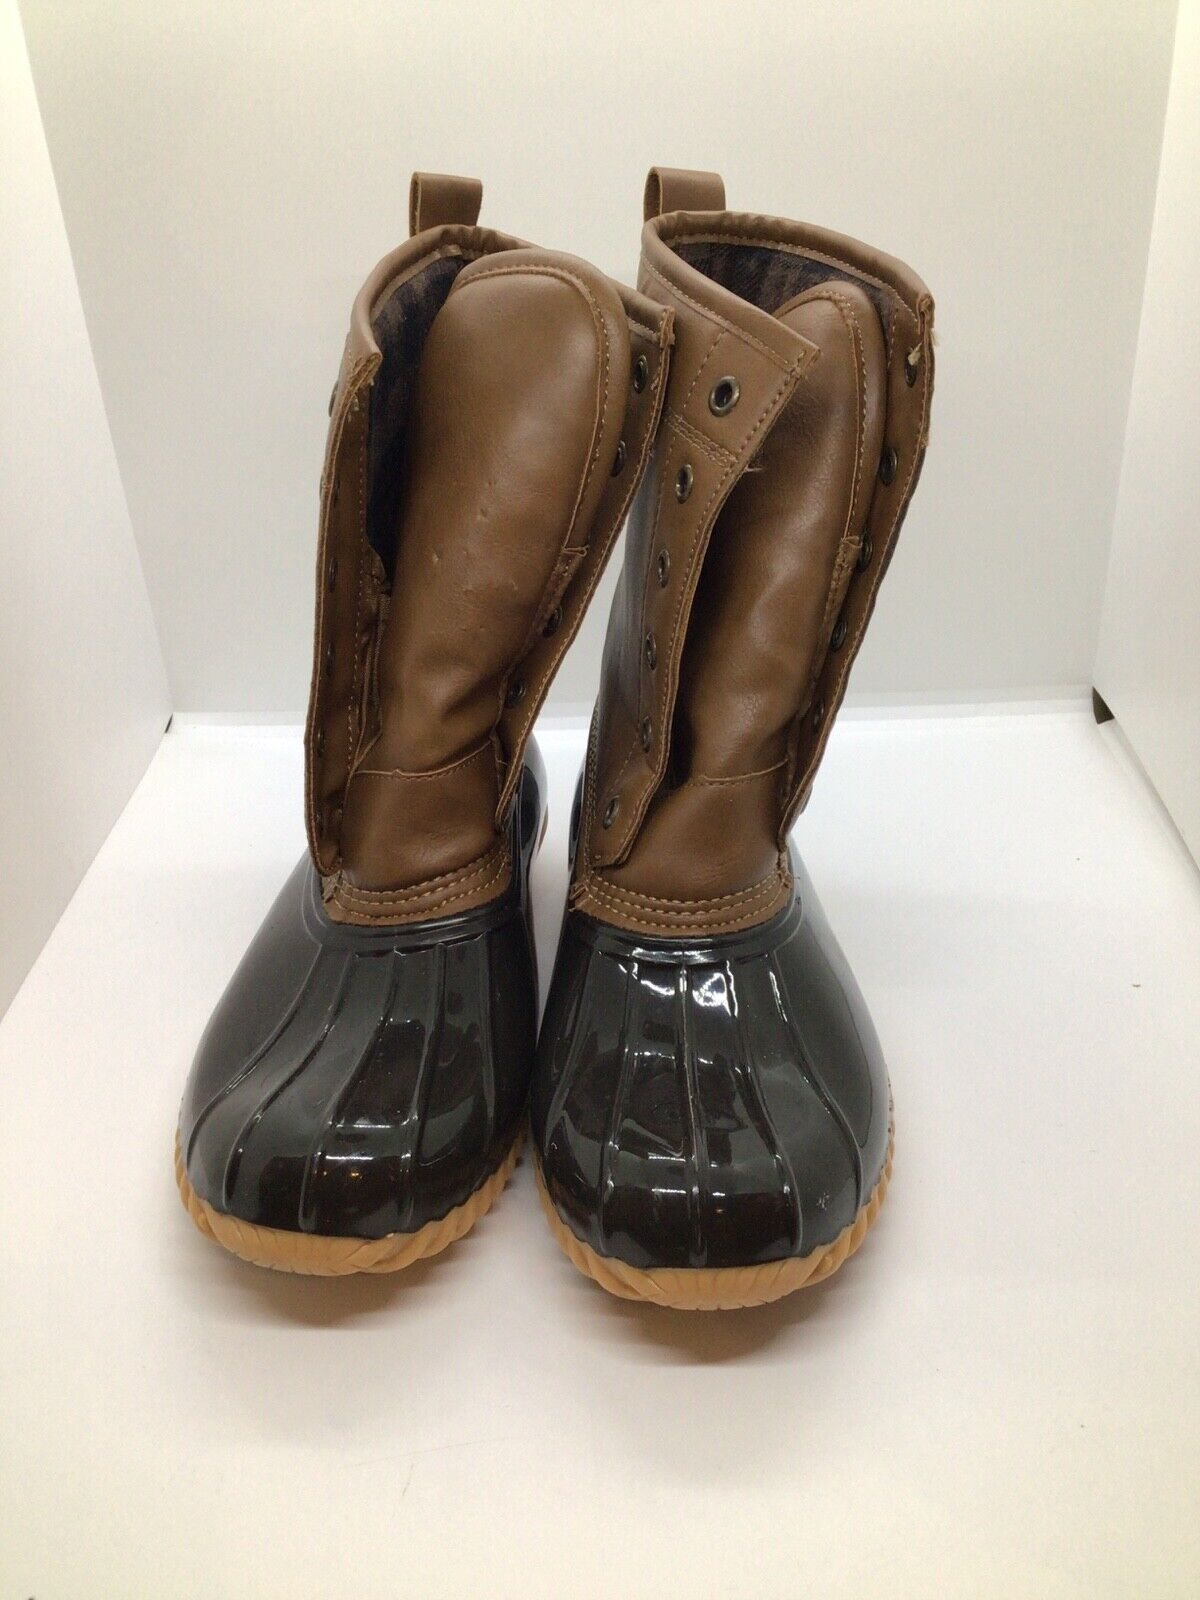 The Original Duck Boot by Sporto Ariel Lace Up Duck Rain Boots 6.5 Tan/Brown,